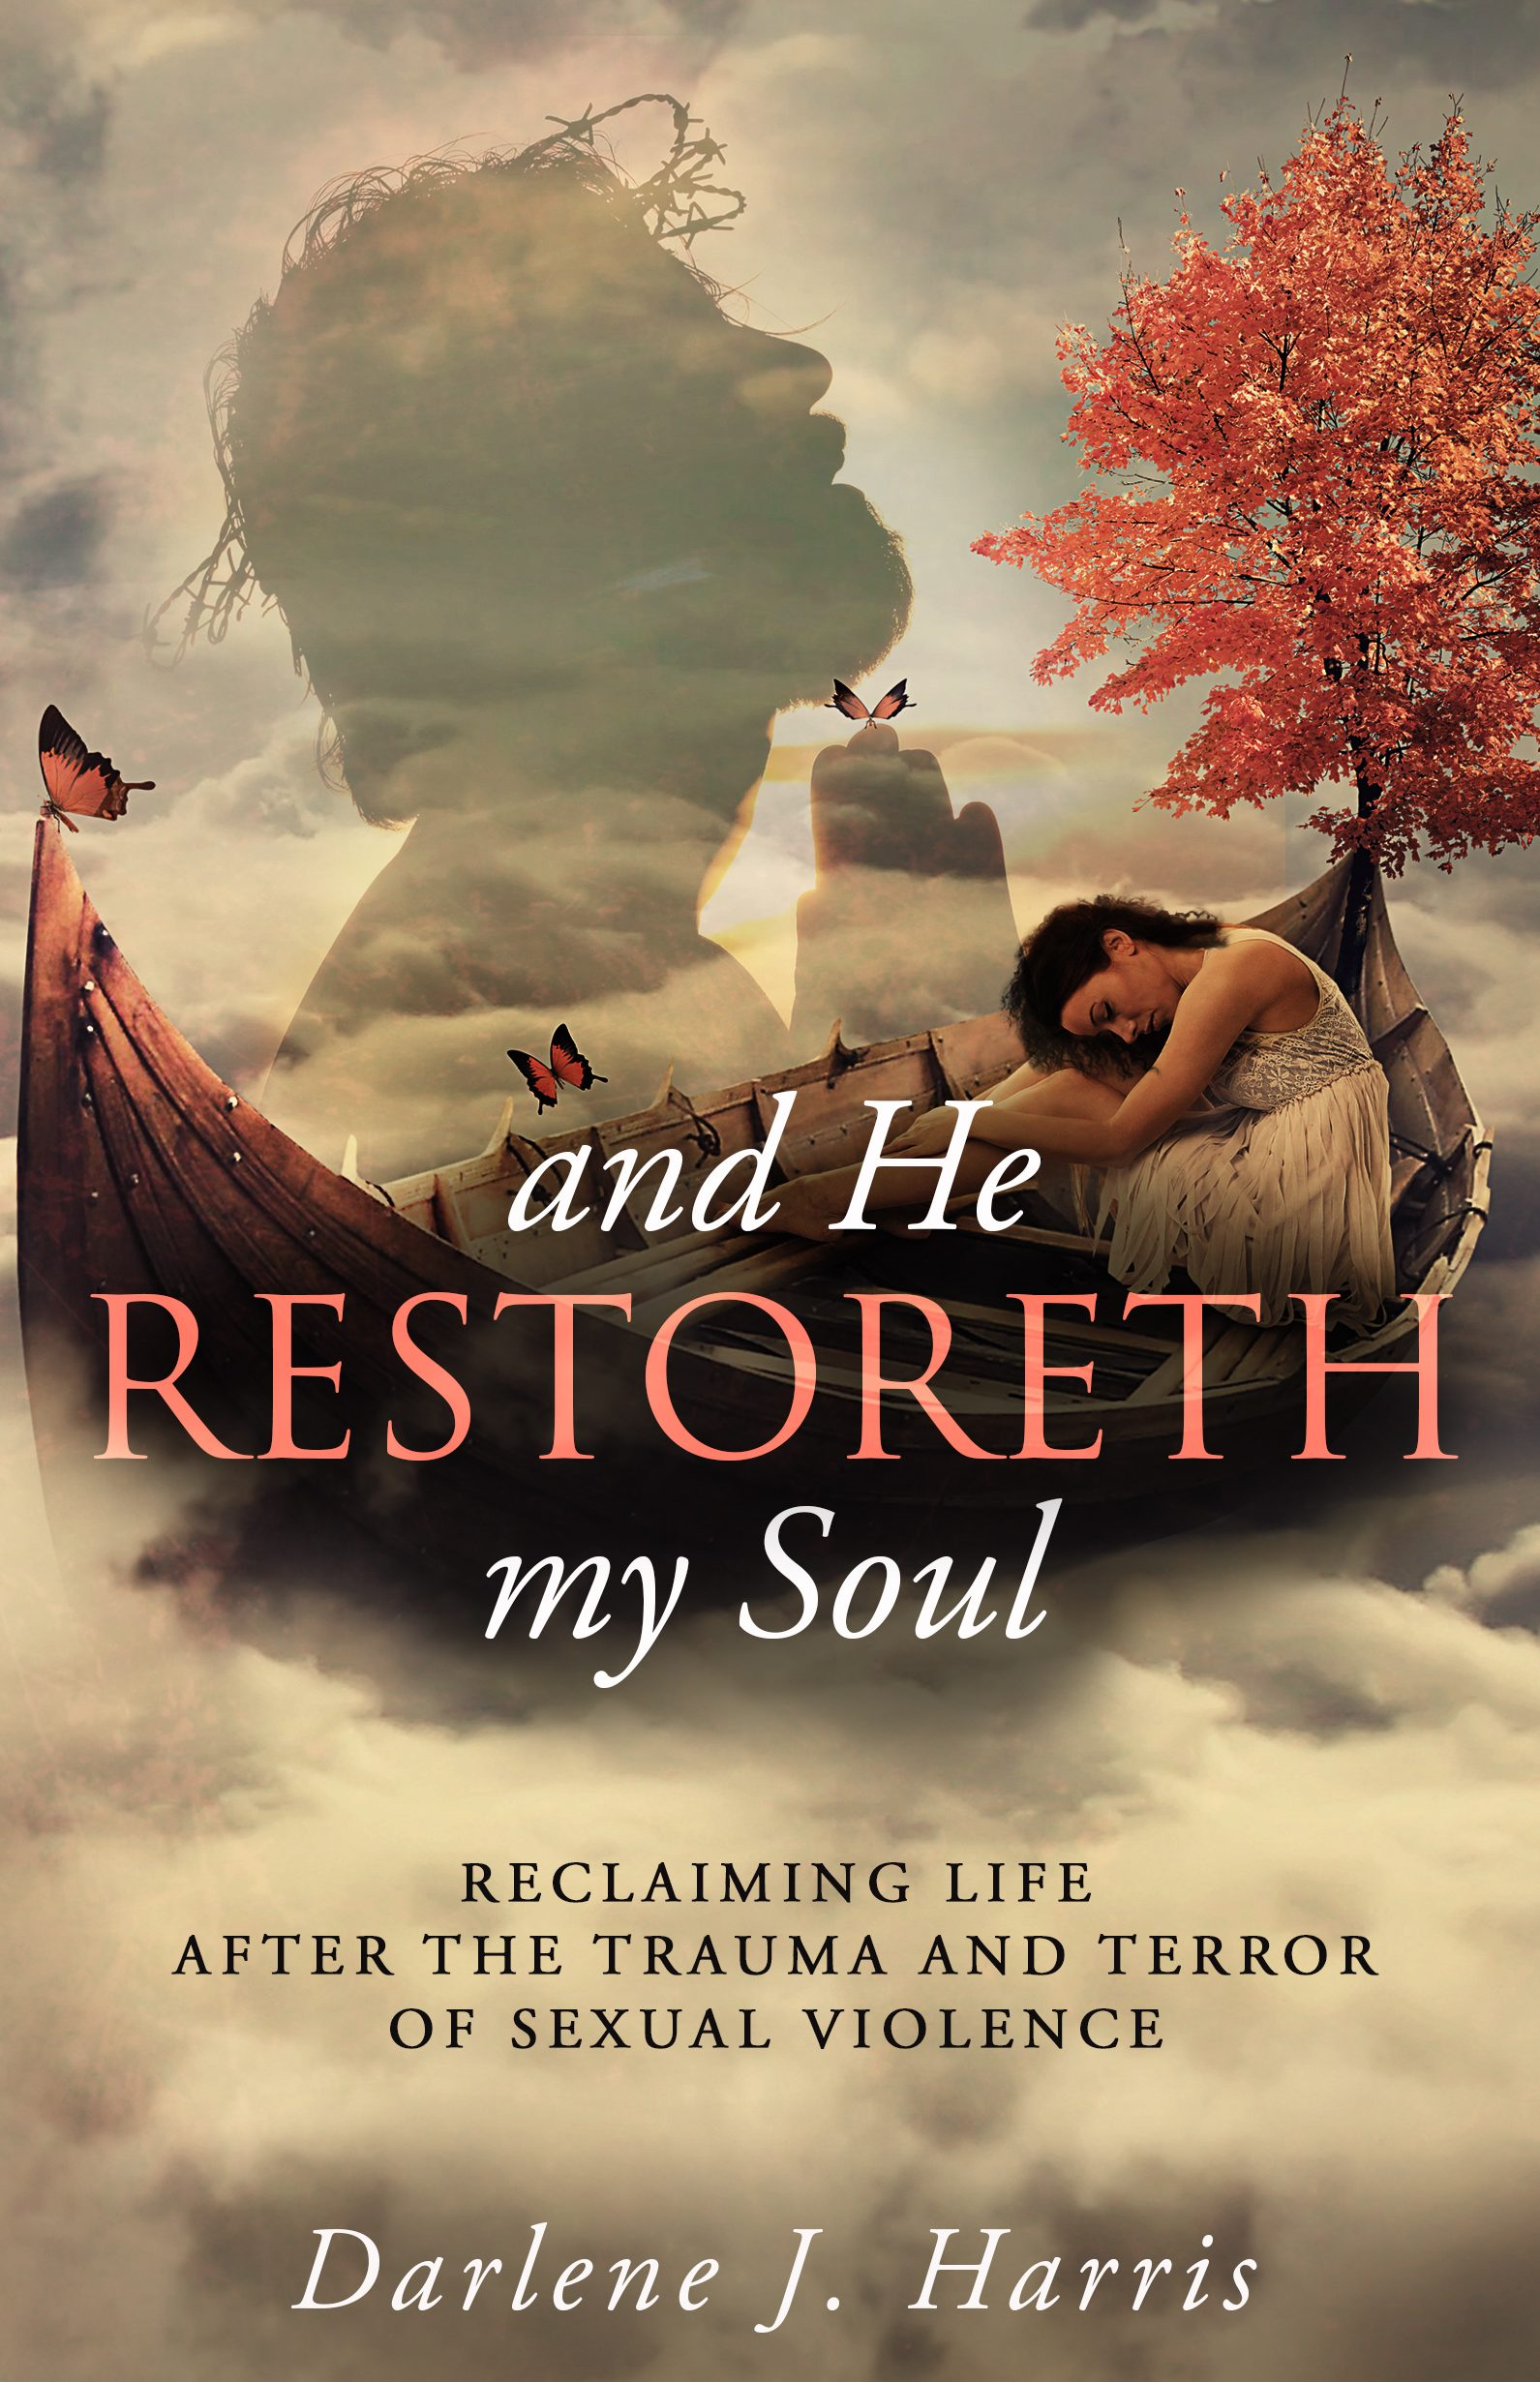 And He Restoreth My Soul Project